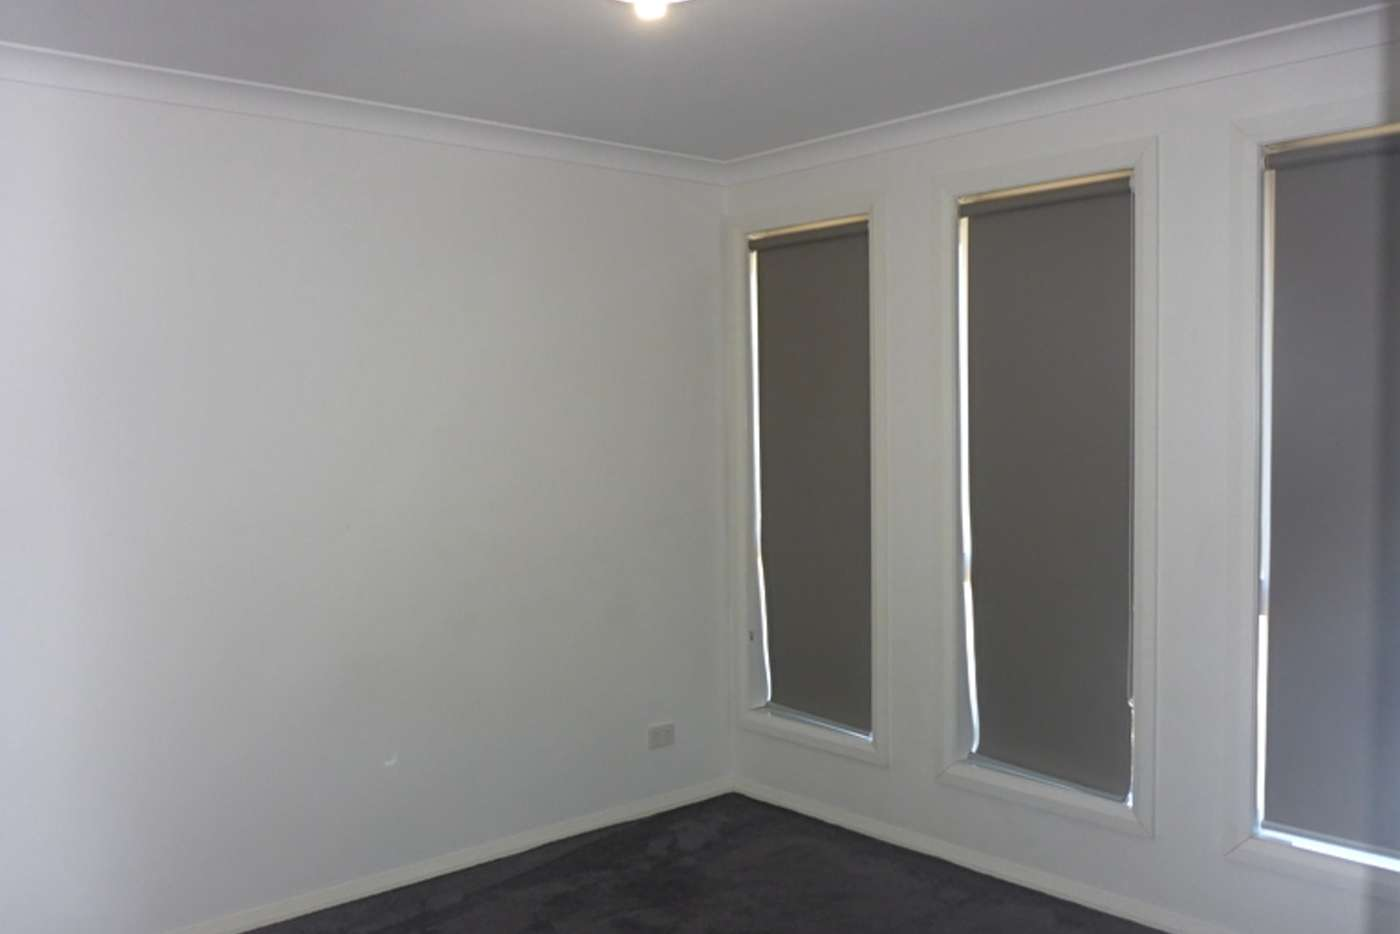 Fifth view of Homely house listing, 9 Sadlier Street, Wodonga VIC 3690